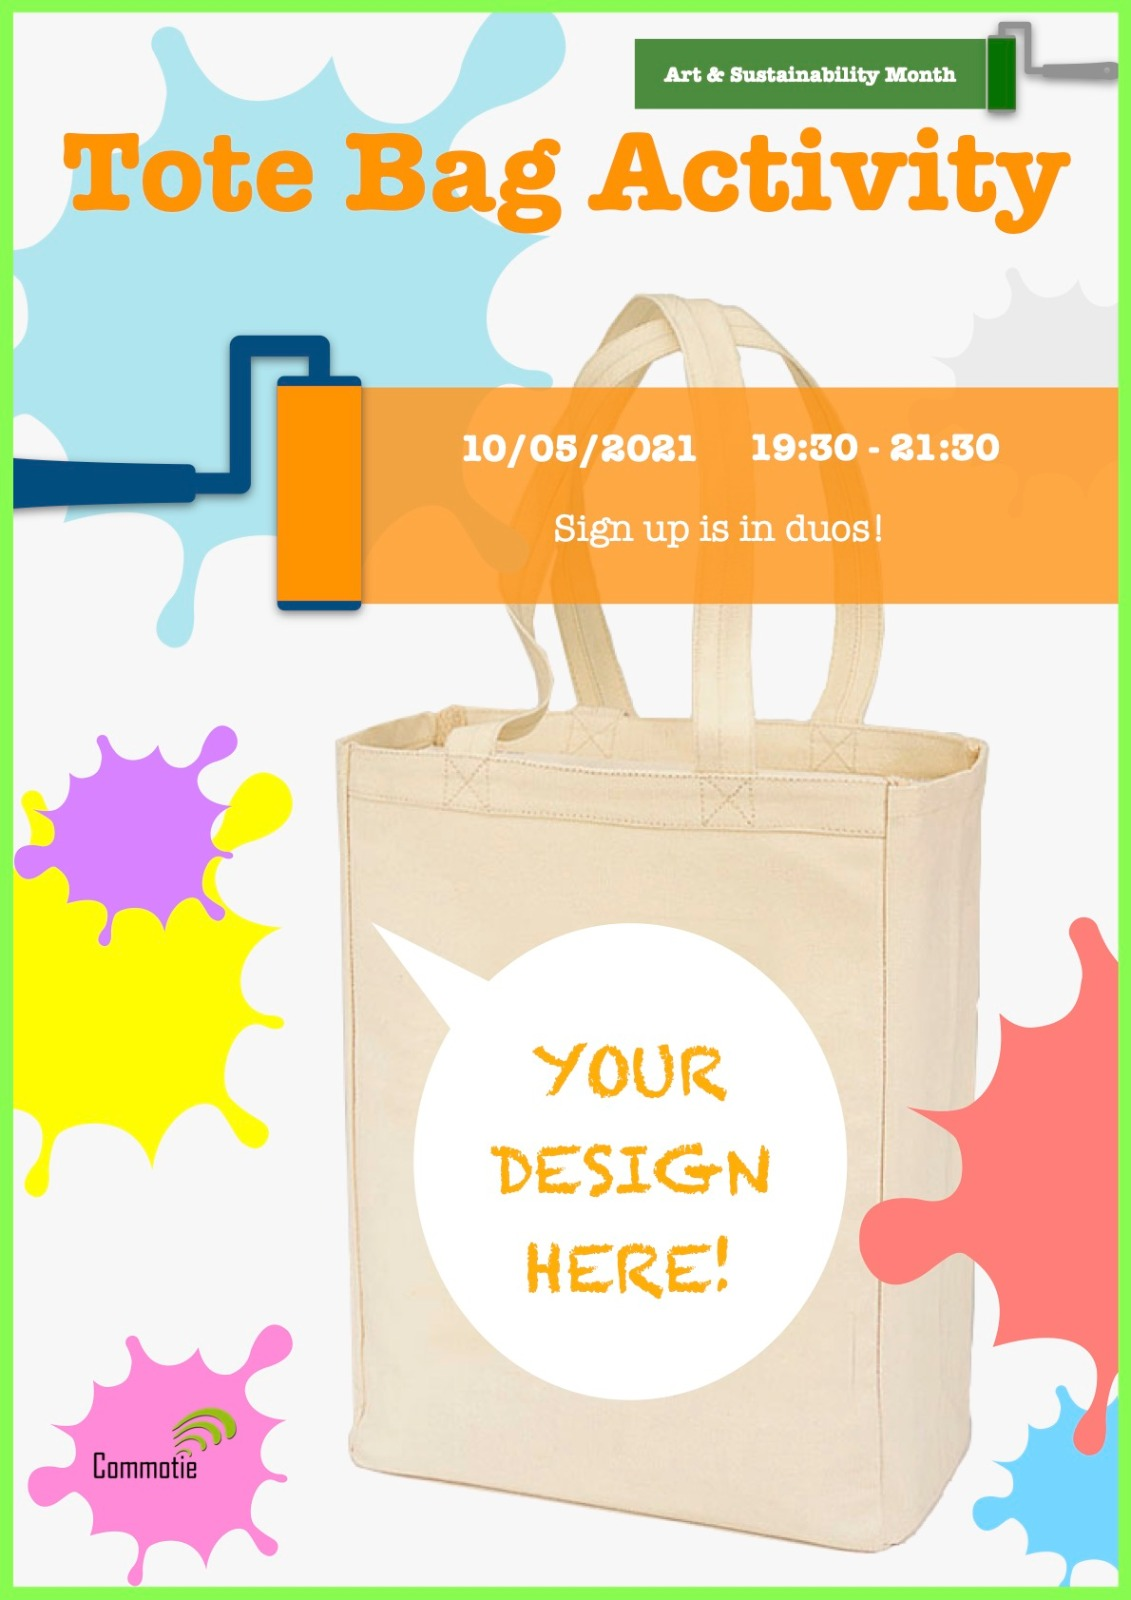 Sustainability Workshop: design your own tote bag!